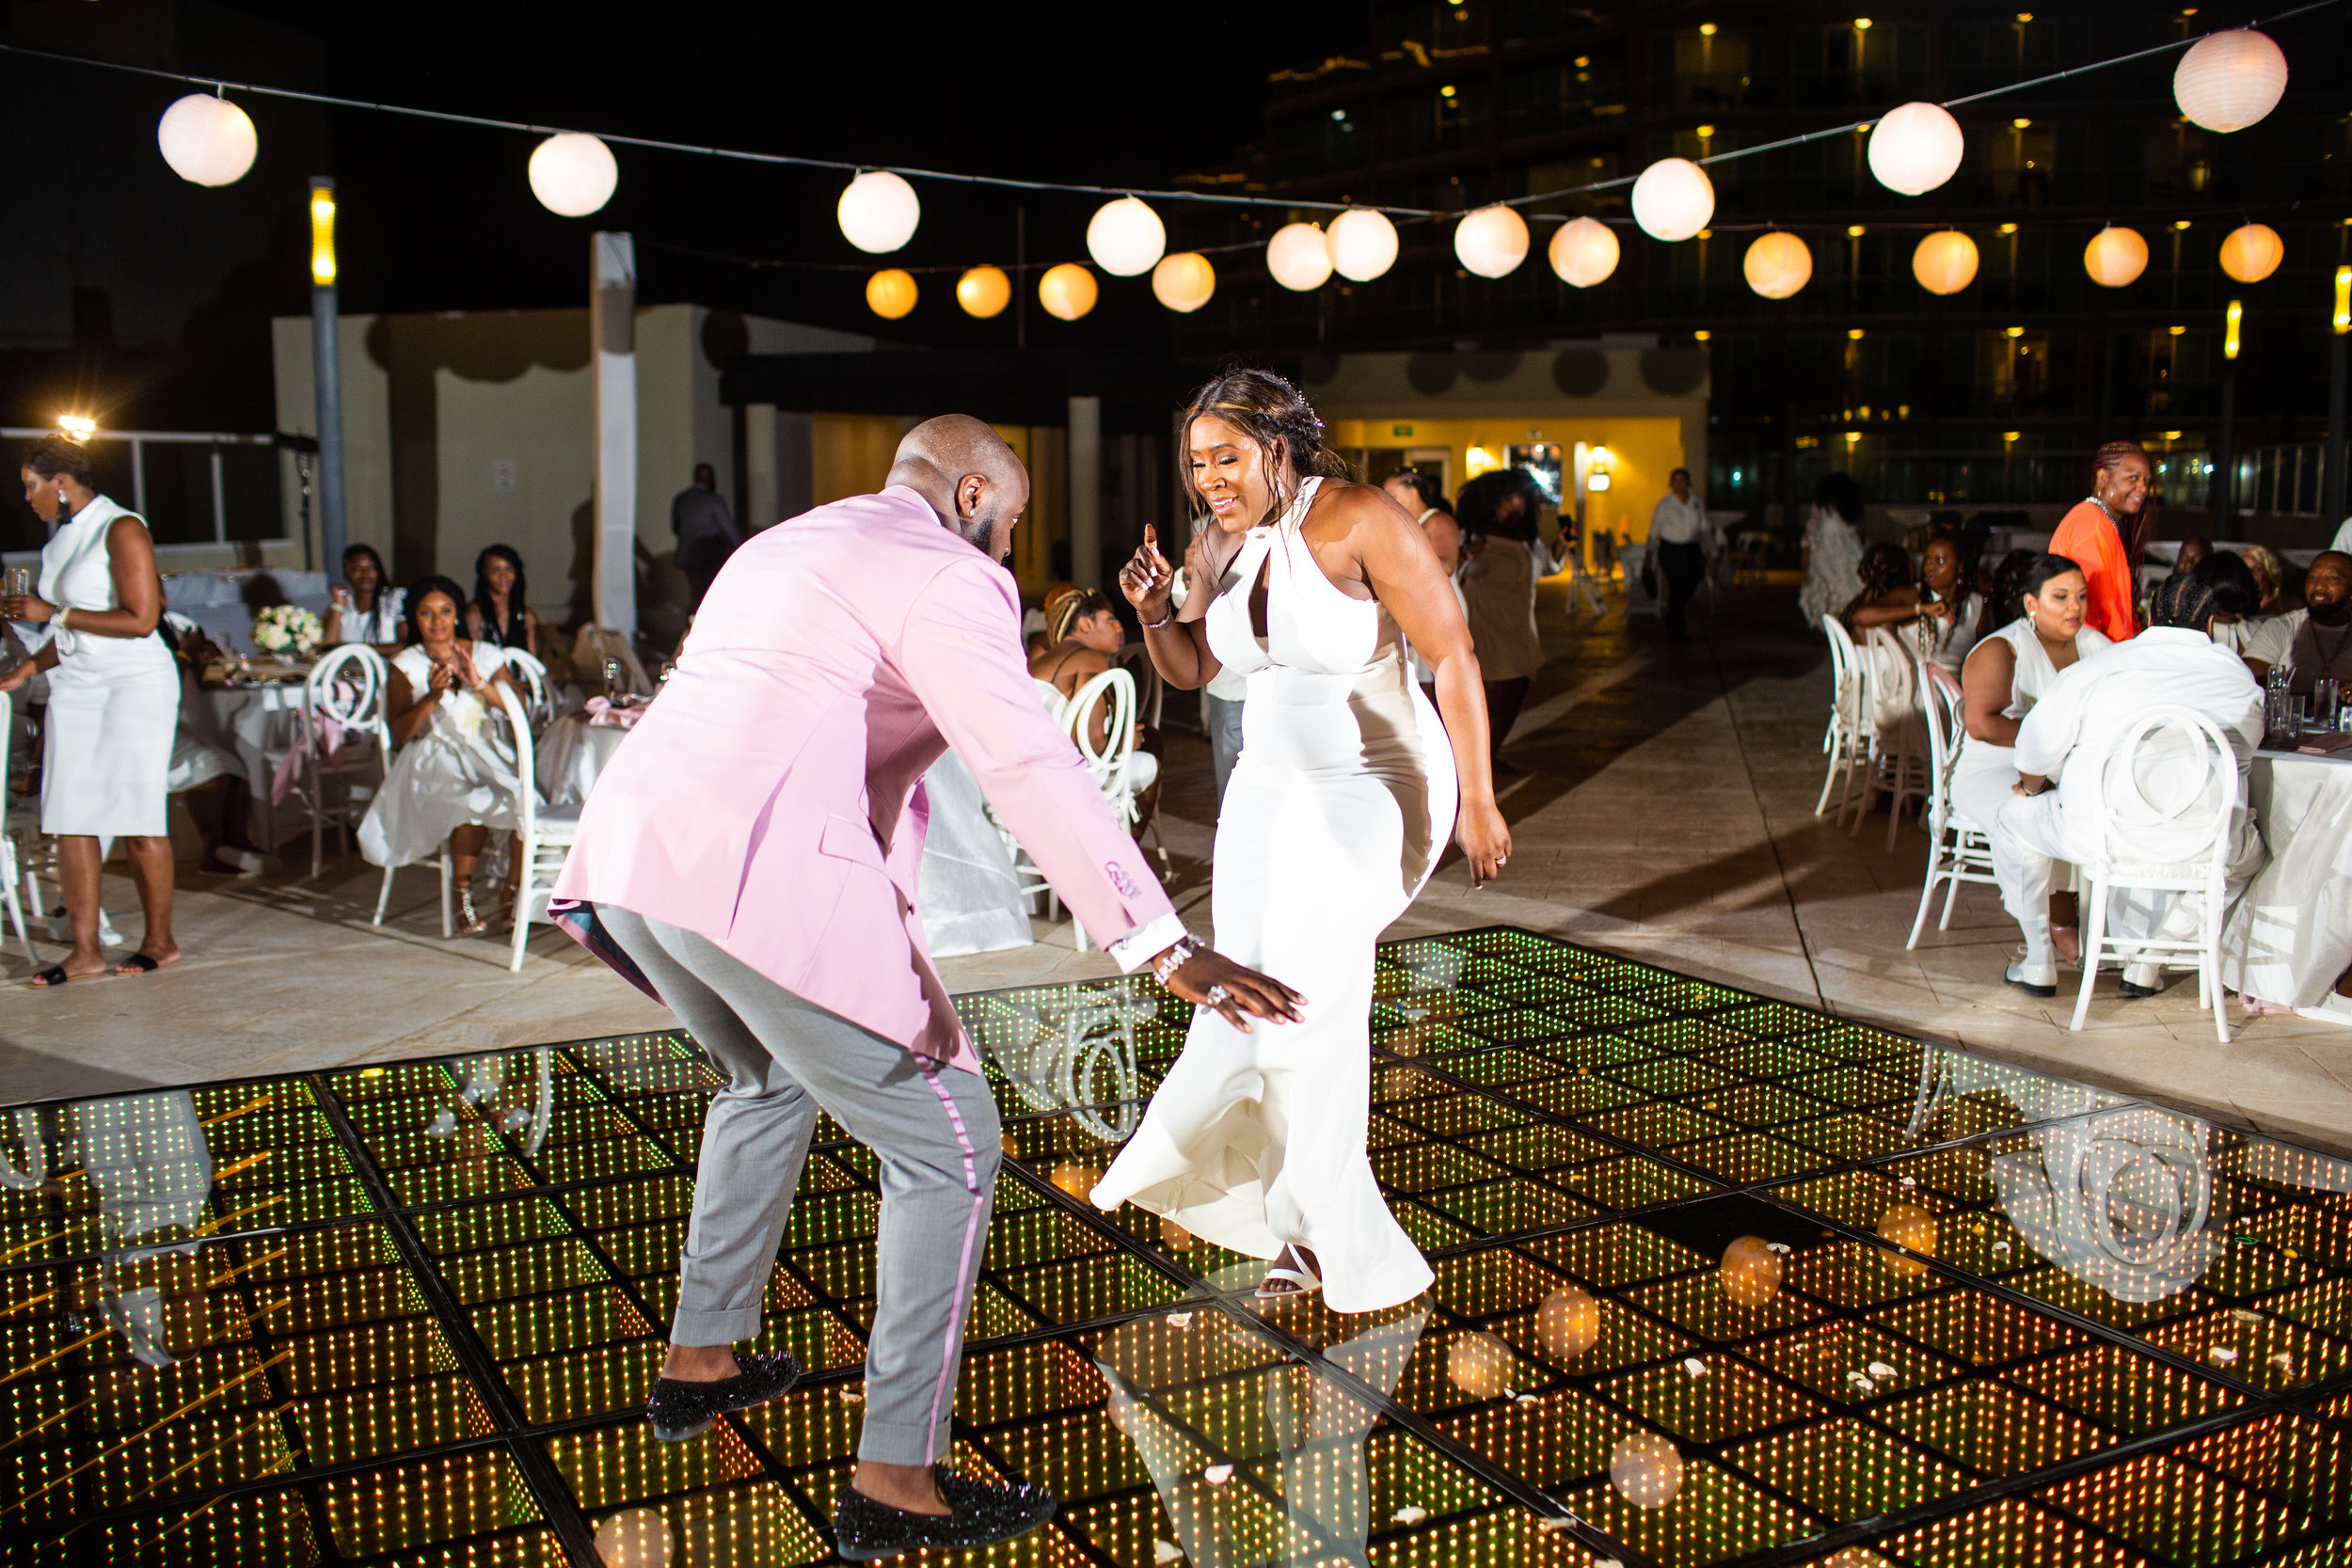 Destination Wedding Cancun, Wedding Reception, Hard Rock Cancun First Dance.jpg